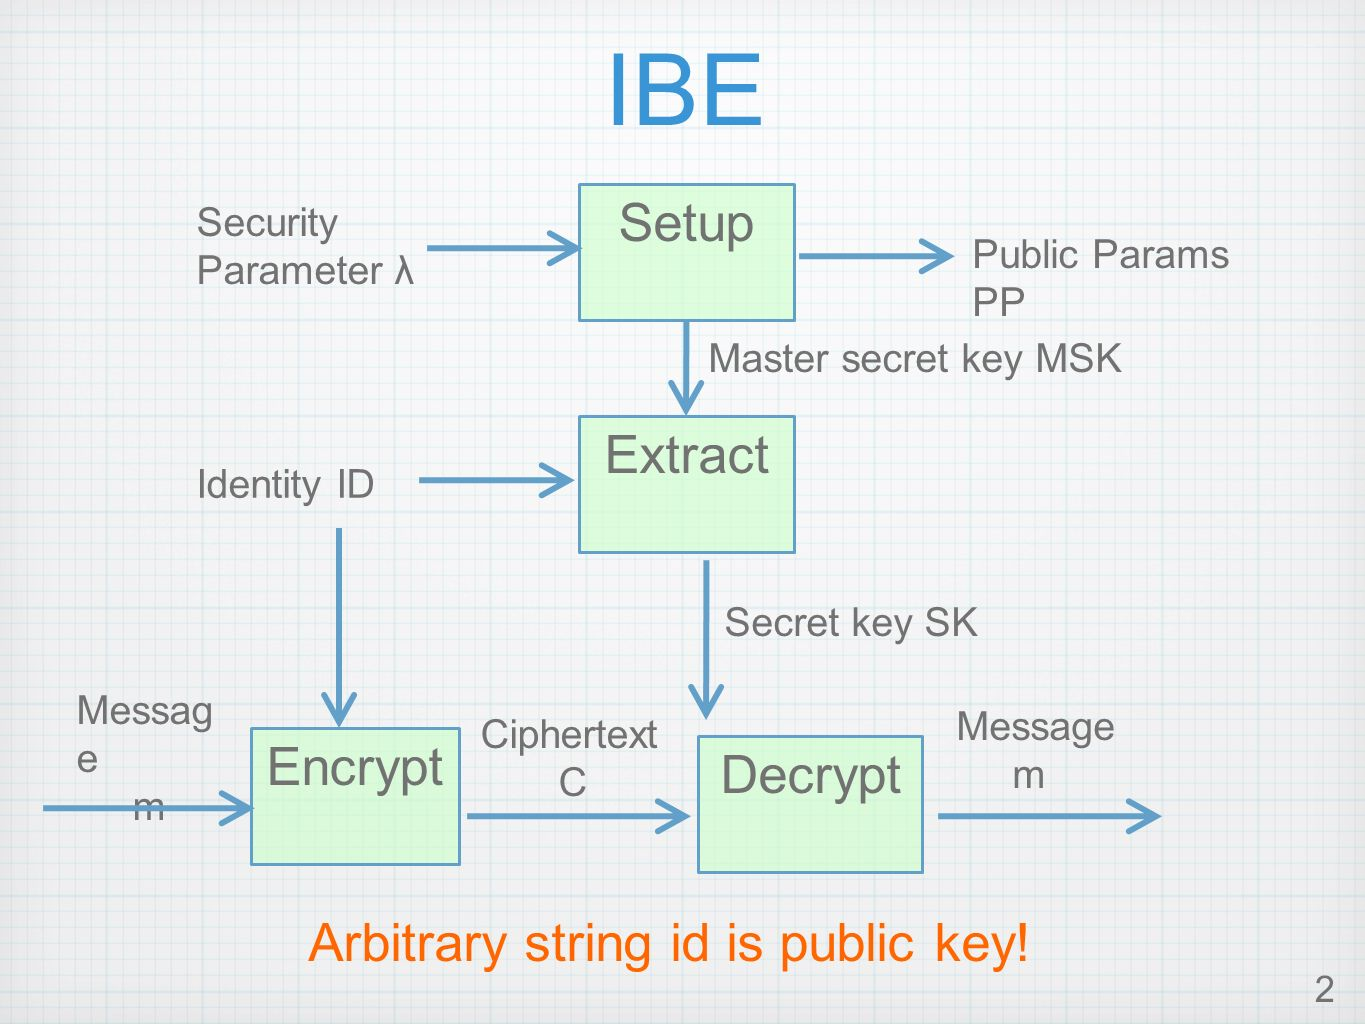 2 IBE Setup Extract Encrypt Decrypt Public Params PP Master secret key MSK Security Parameter λ Identity ID Secret key SK Messag e m Ciphertext C Message m Arbitrary string id is public key!